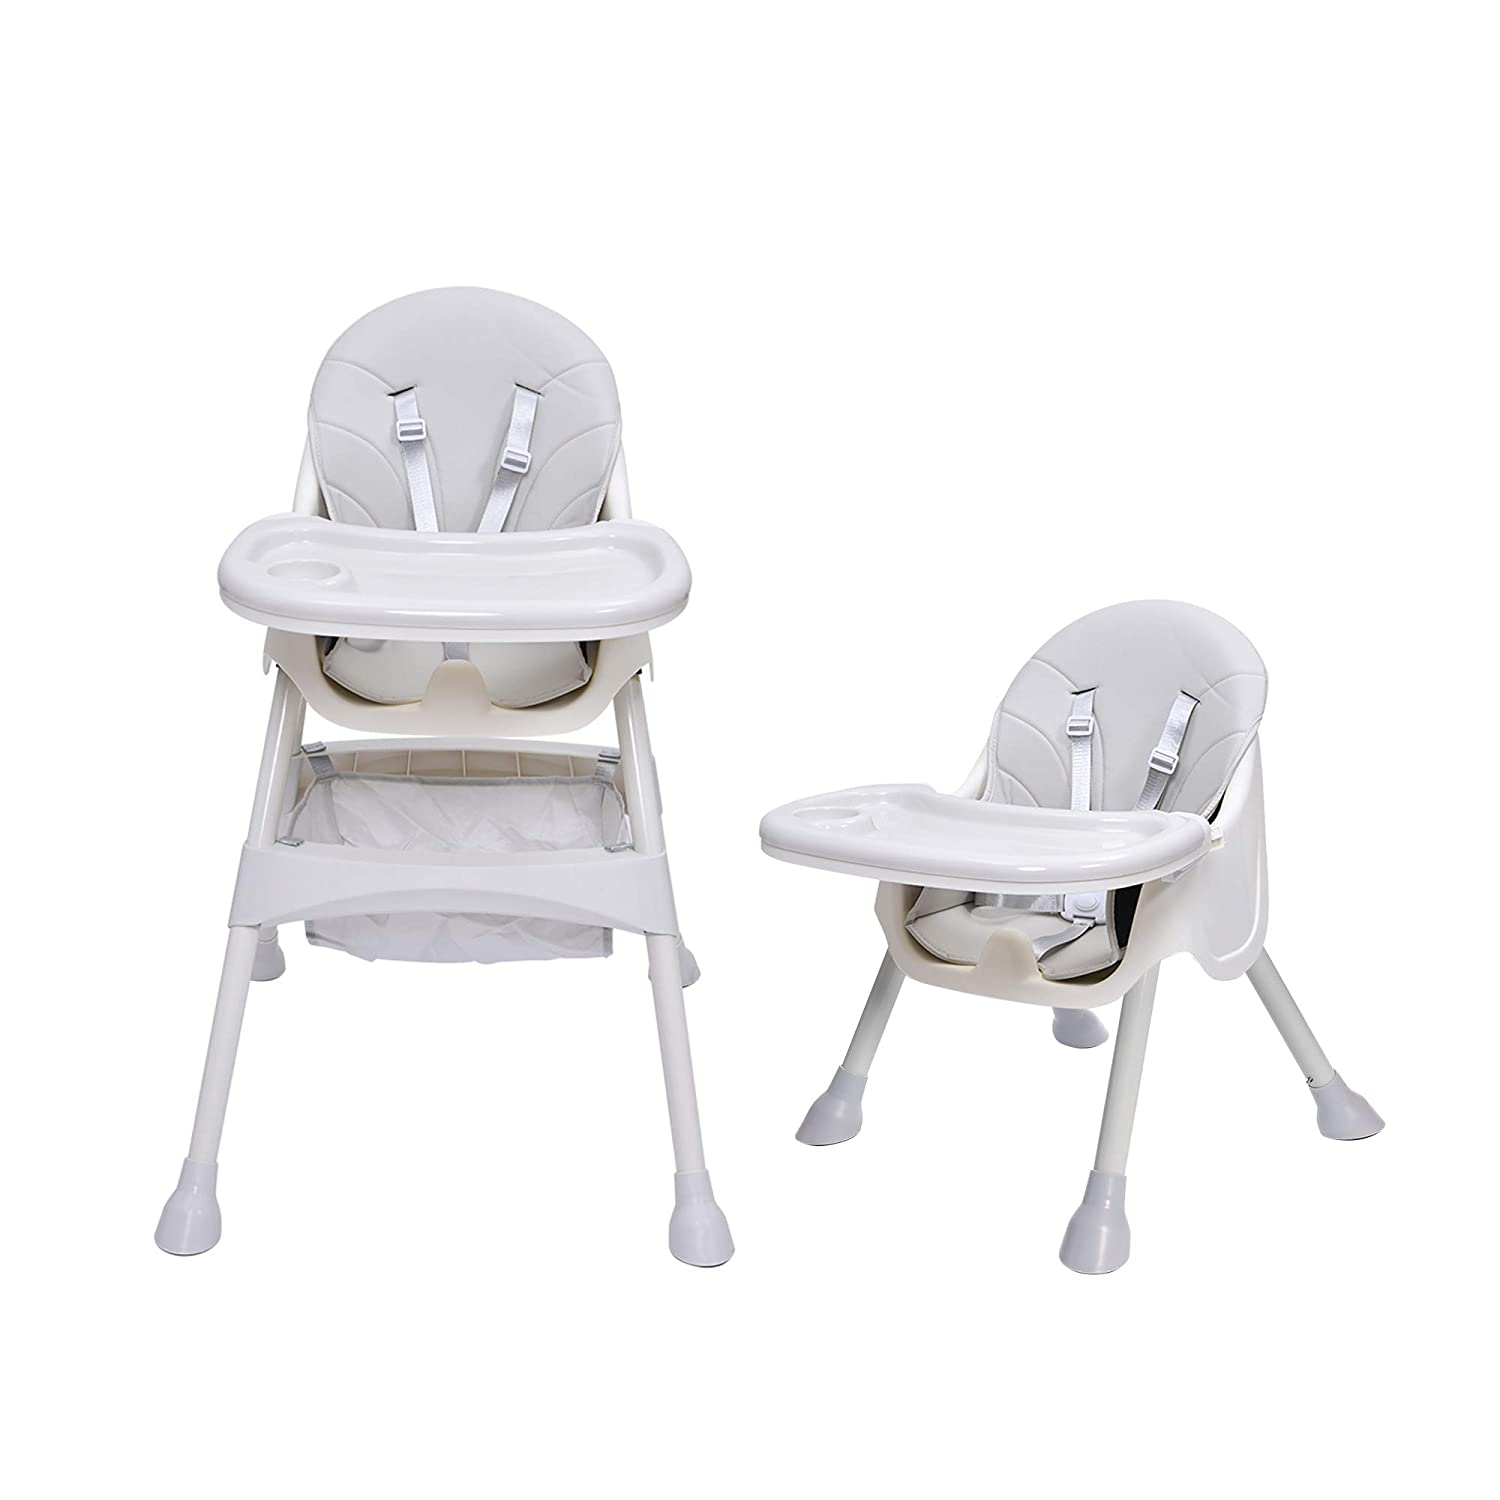 Bellanny 2 in 1 High Chair Baby,High Chair,Combination High Chair,with 5-Point Seat Belts,Height Adjustable,Removable Tray,from 6 Months to 3 Years Old Baby Chair-Gray